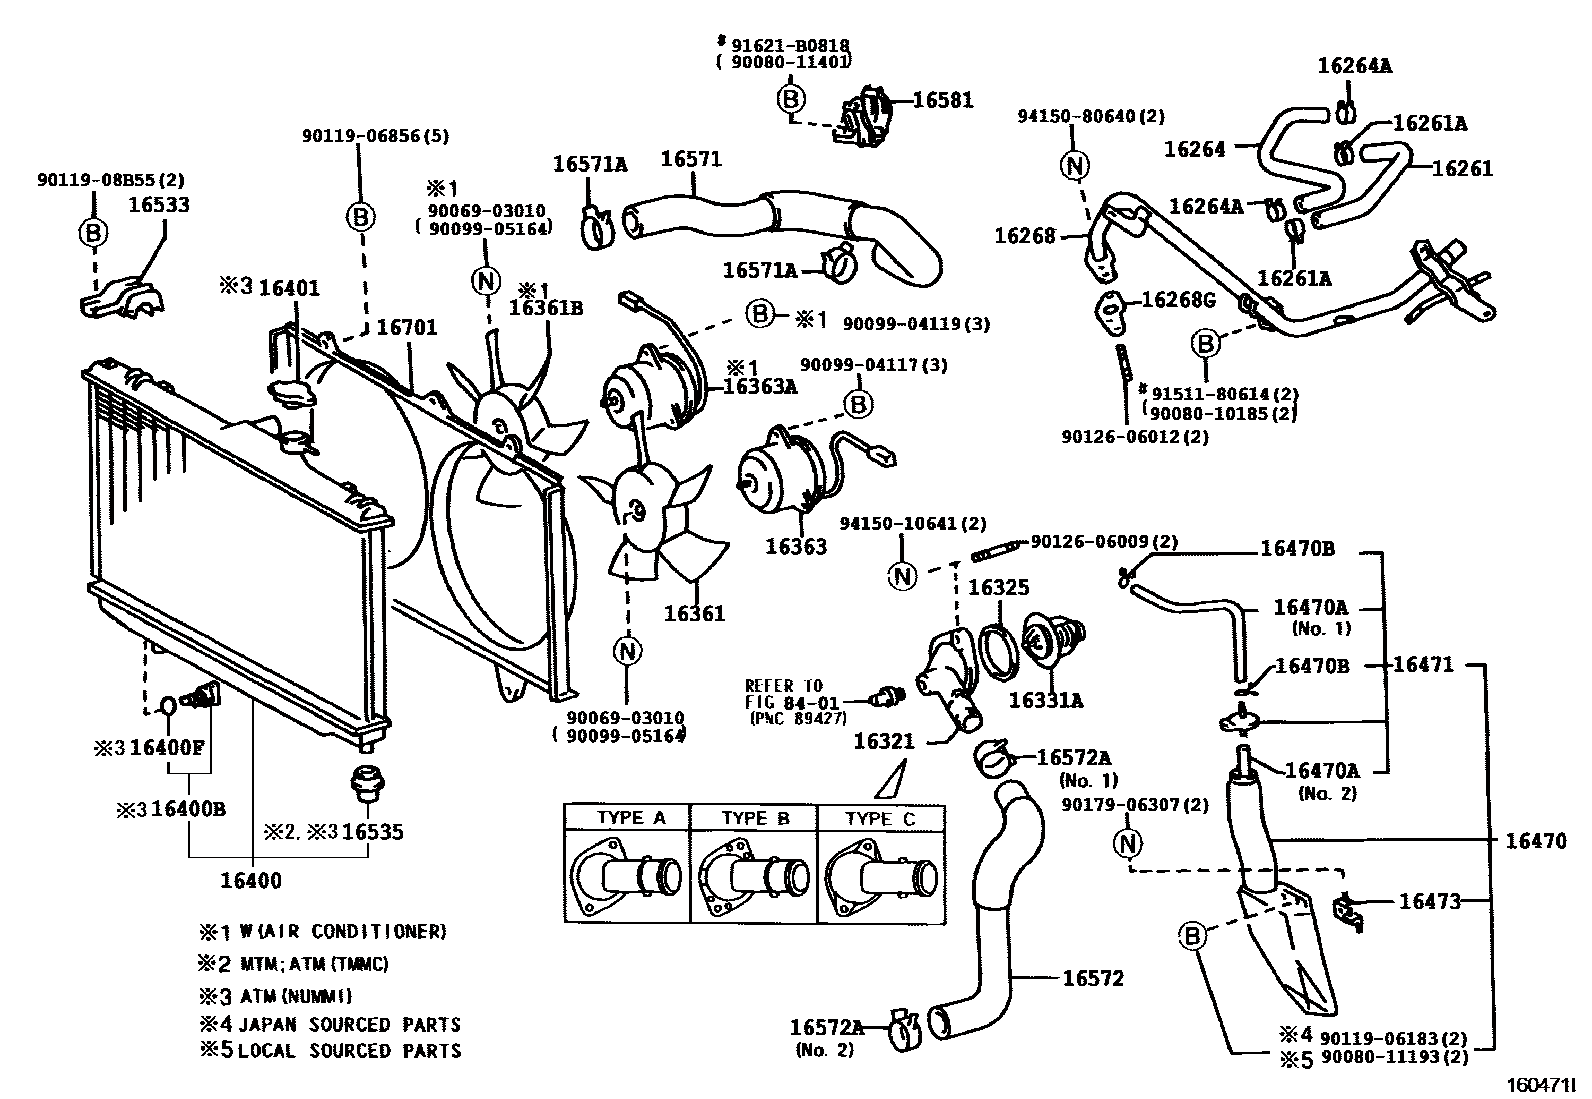 Gmc Sonoma Engine 4 3, Gmc, Free Engine Image For User